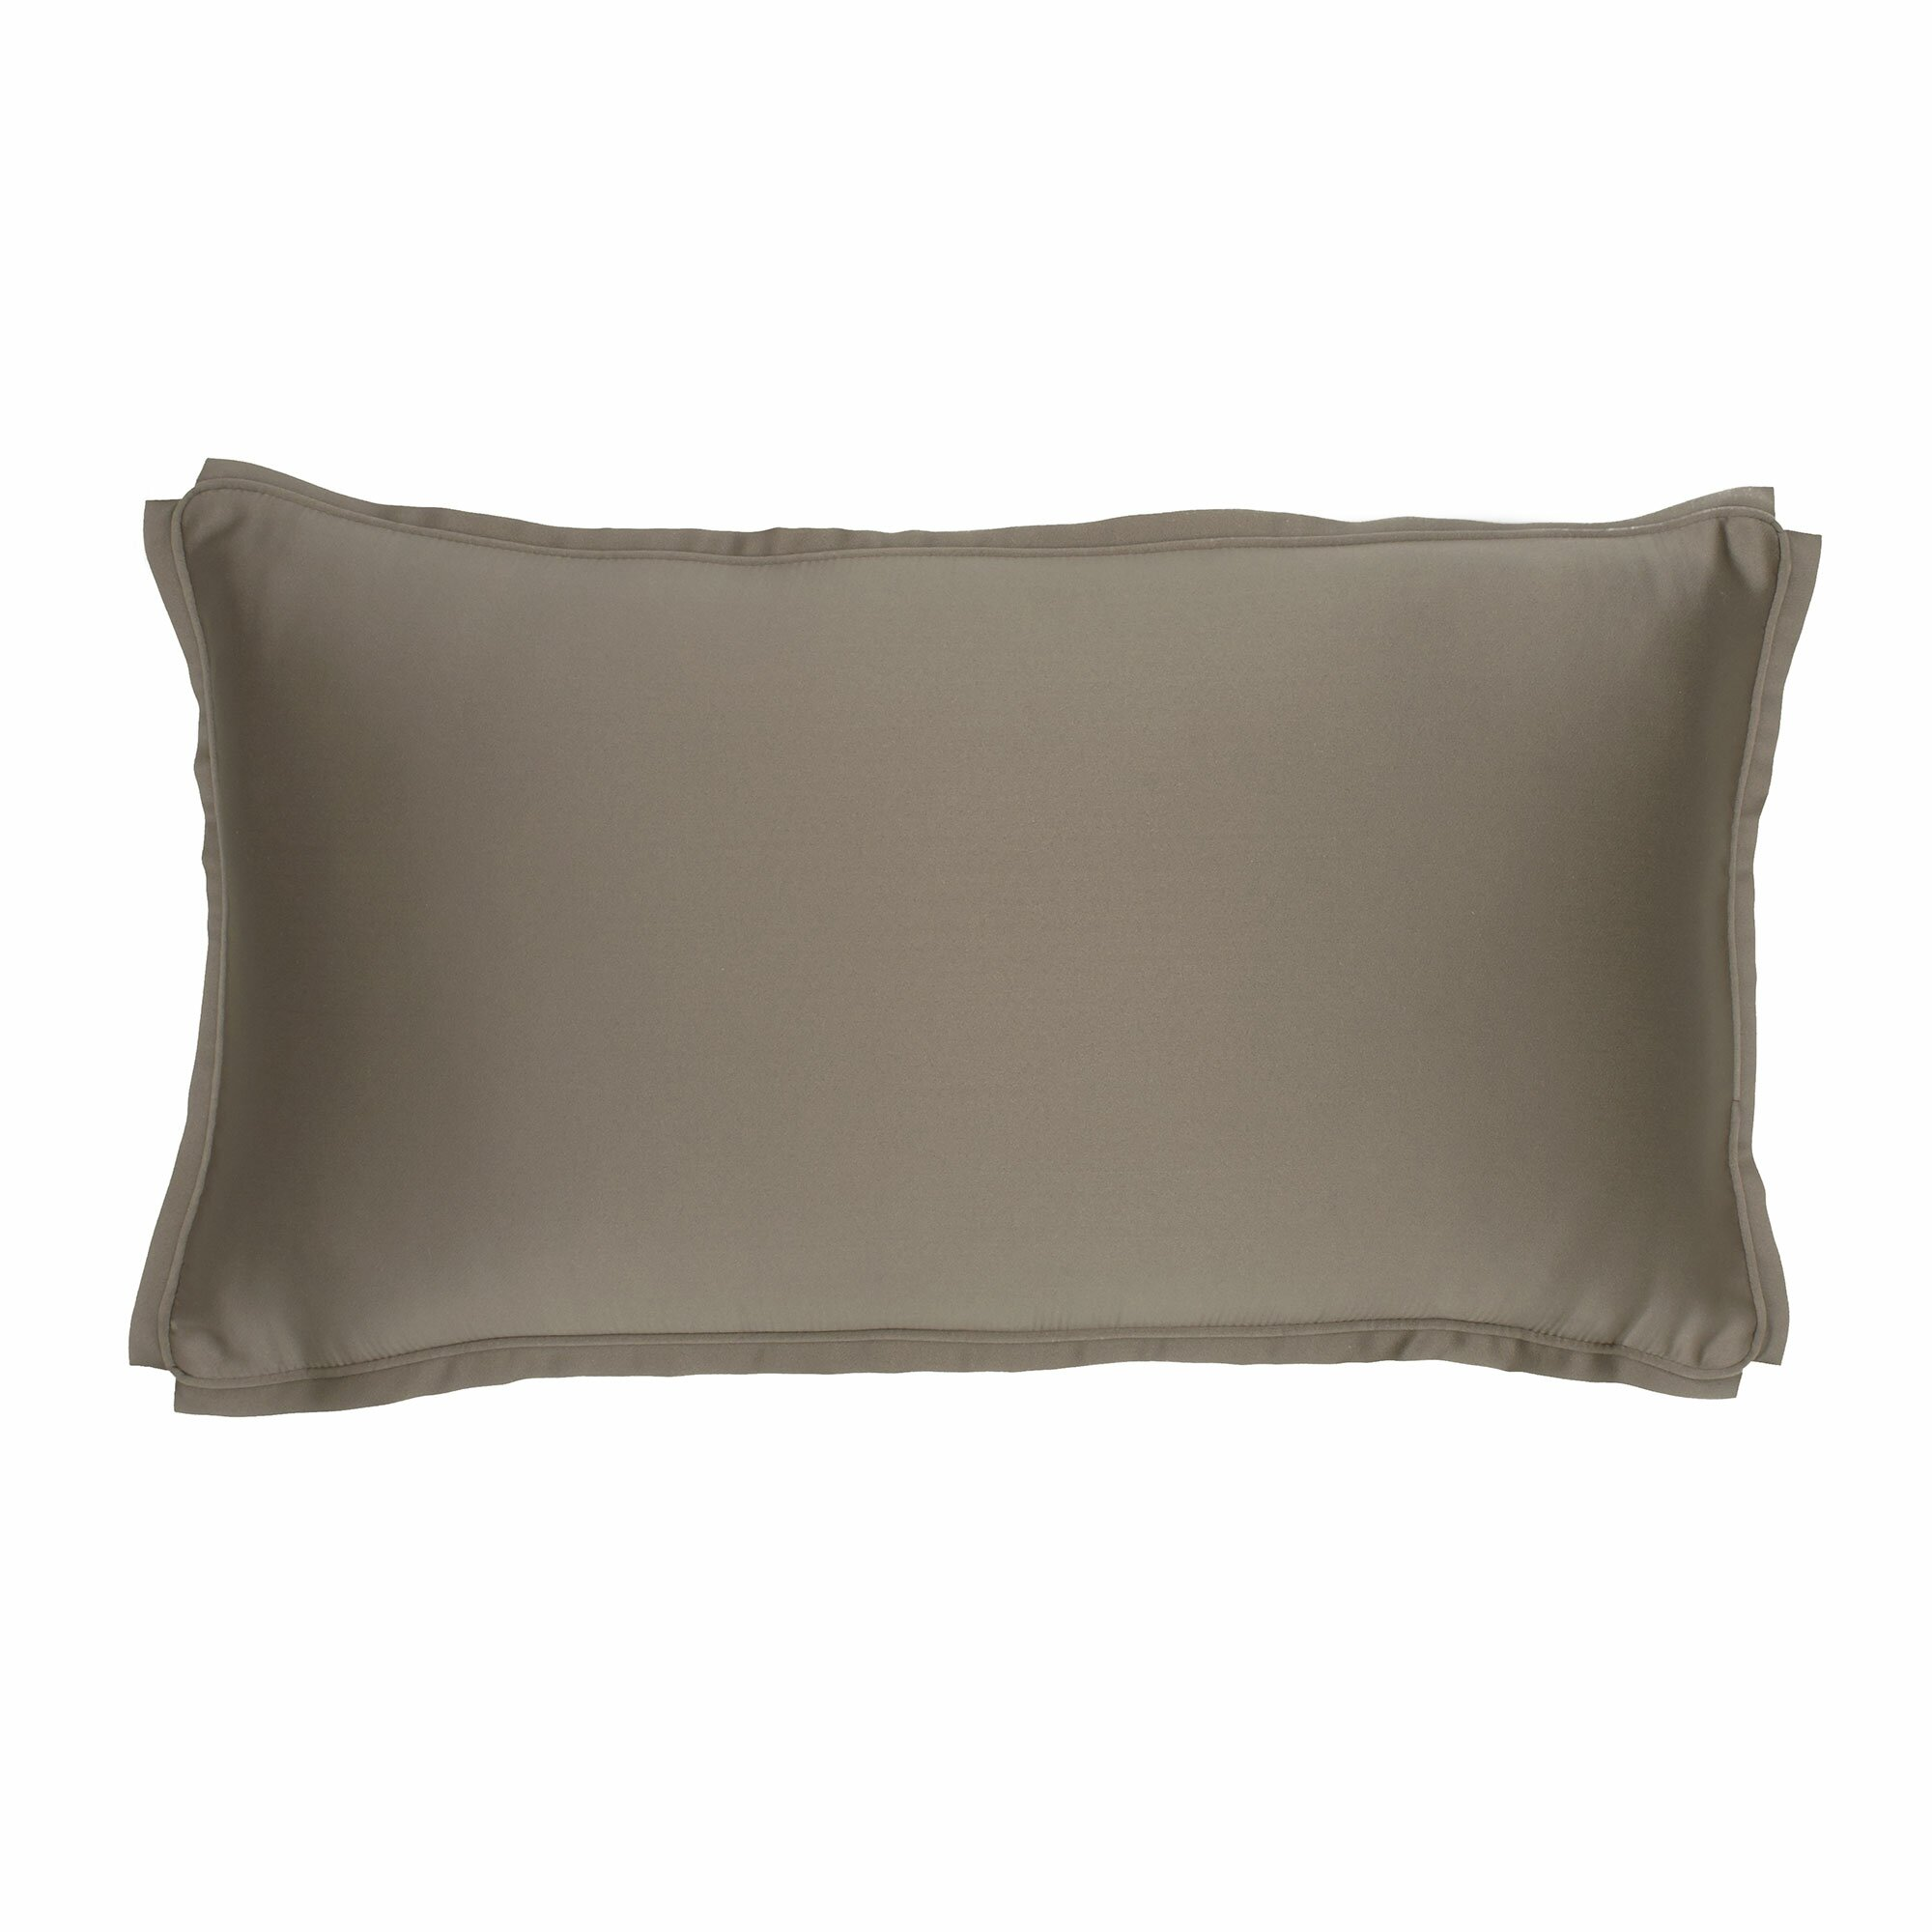 Throw Pillow Gallery : Varick Gallery Upper Stanton Solid Polyester/Polyester blend Throw Pillow & Reviews Wayfair.ca